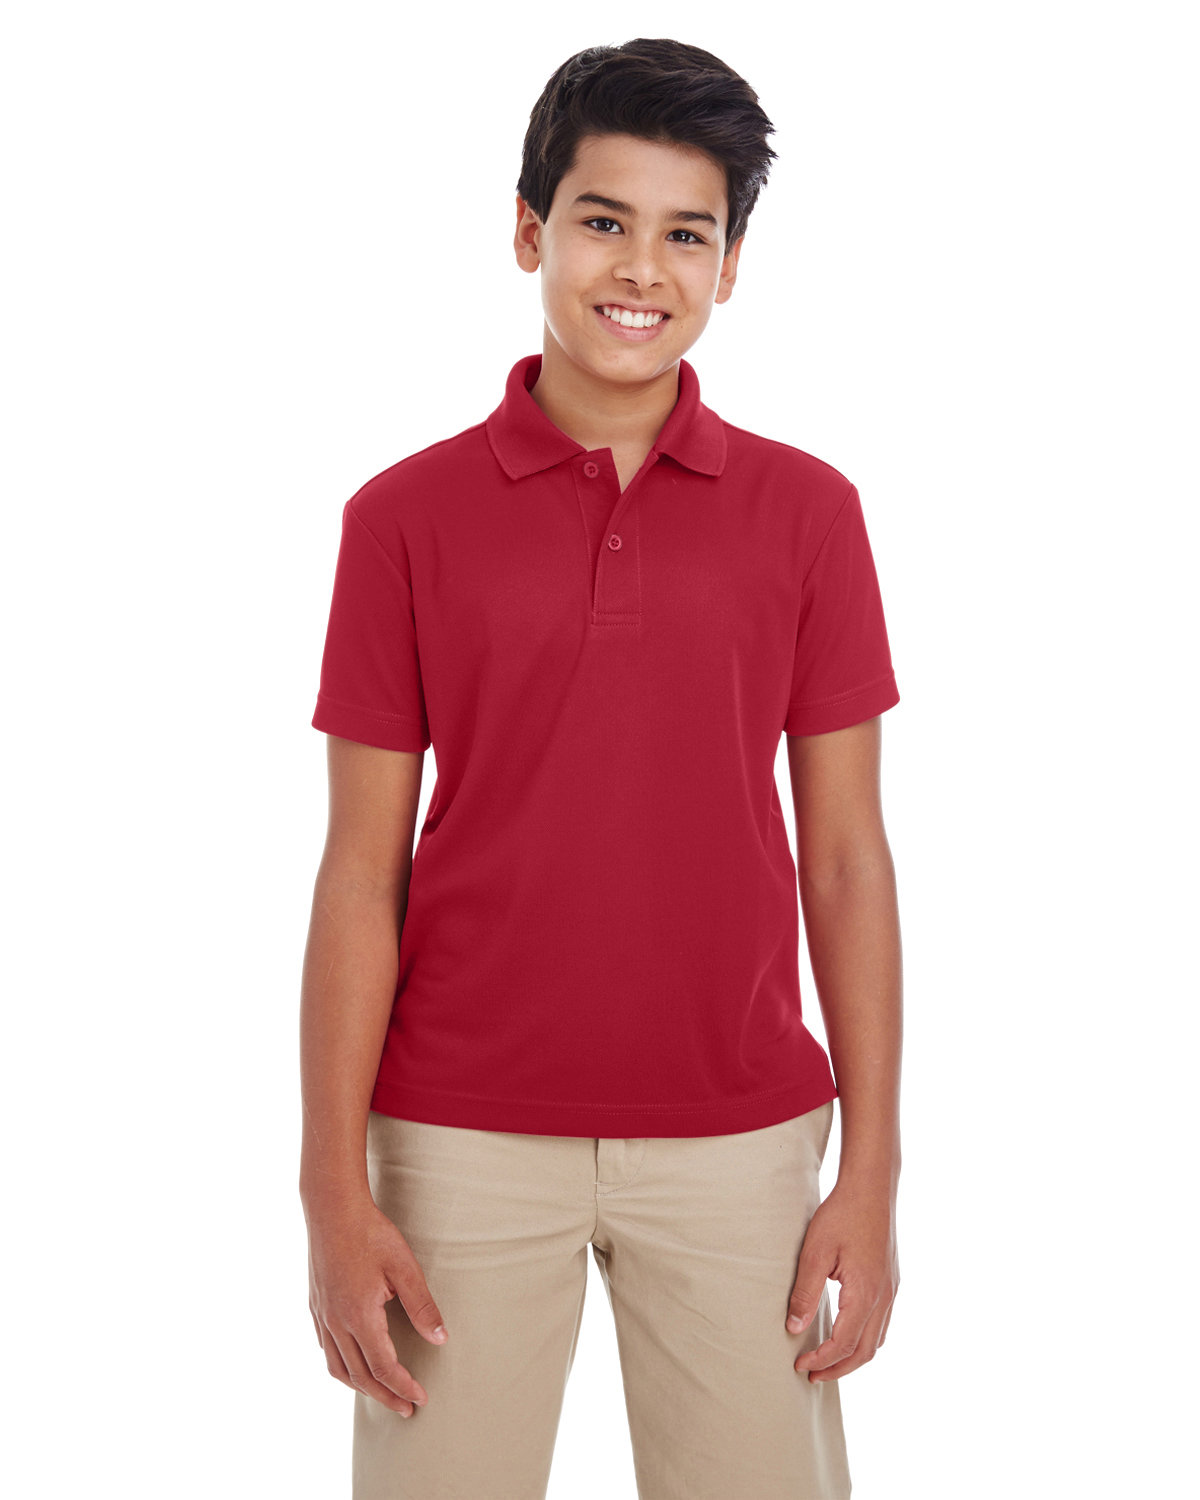 Core 365 Youth Origin Performance Piqué Polo CLASSIC RED